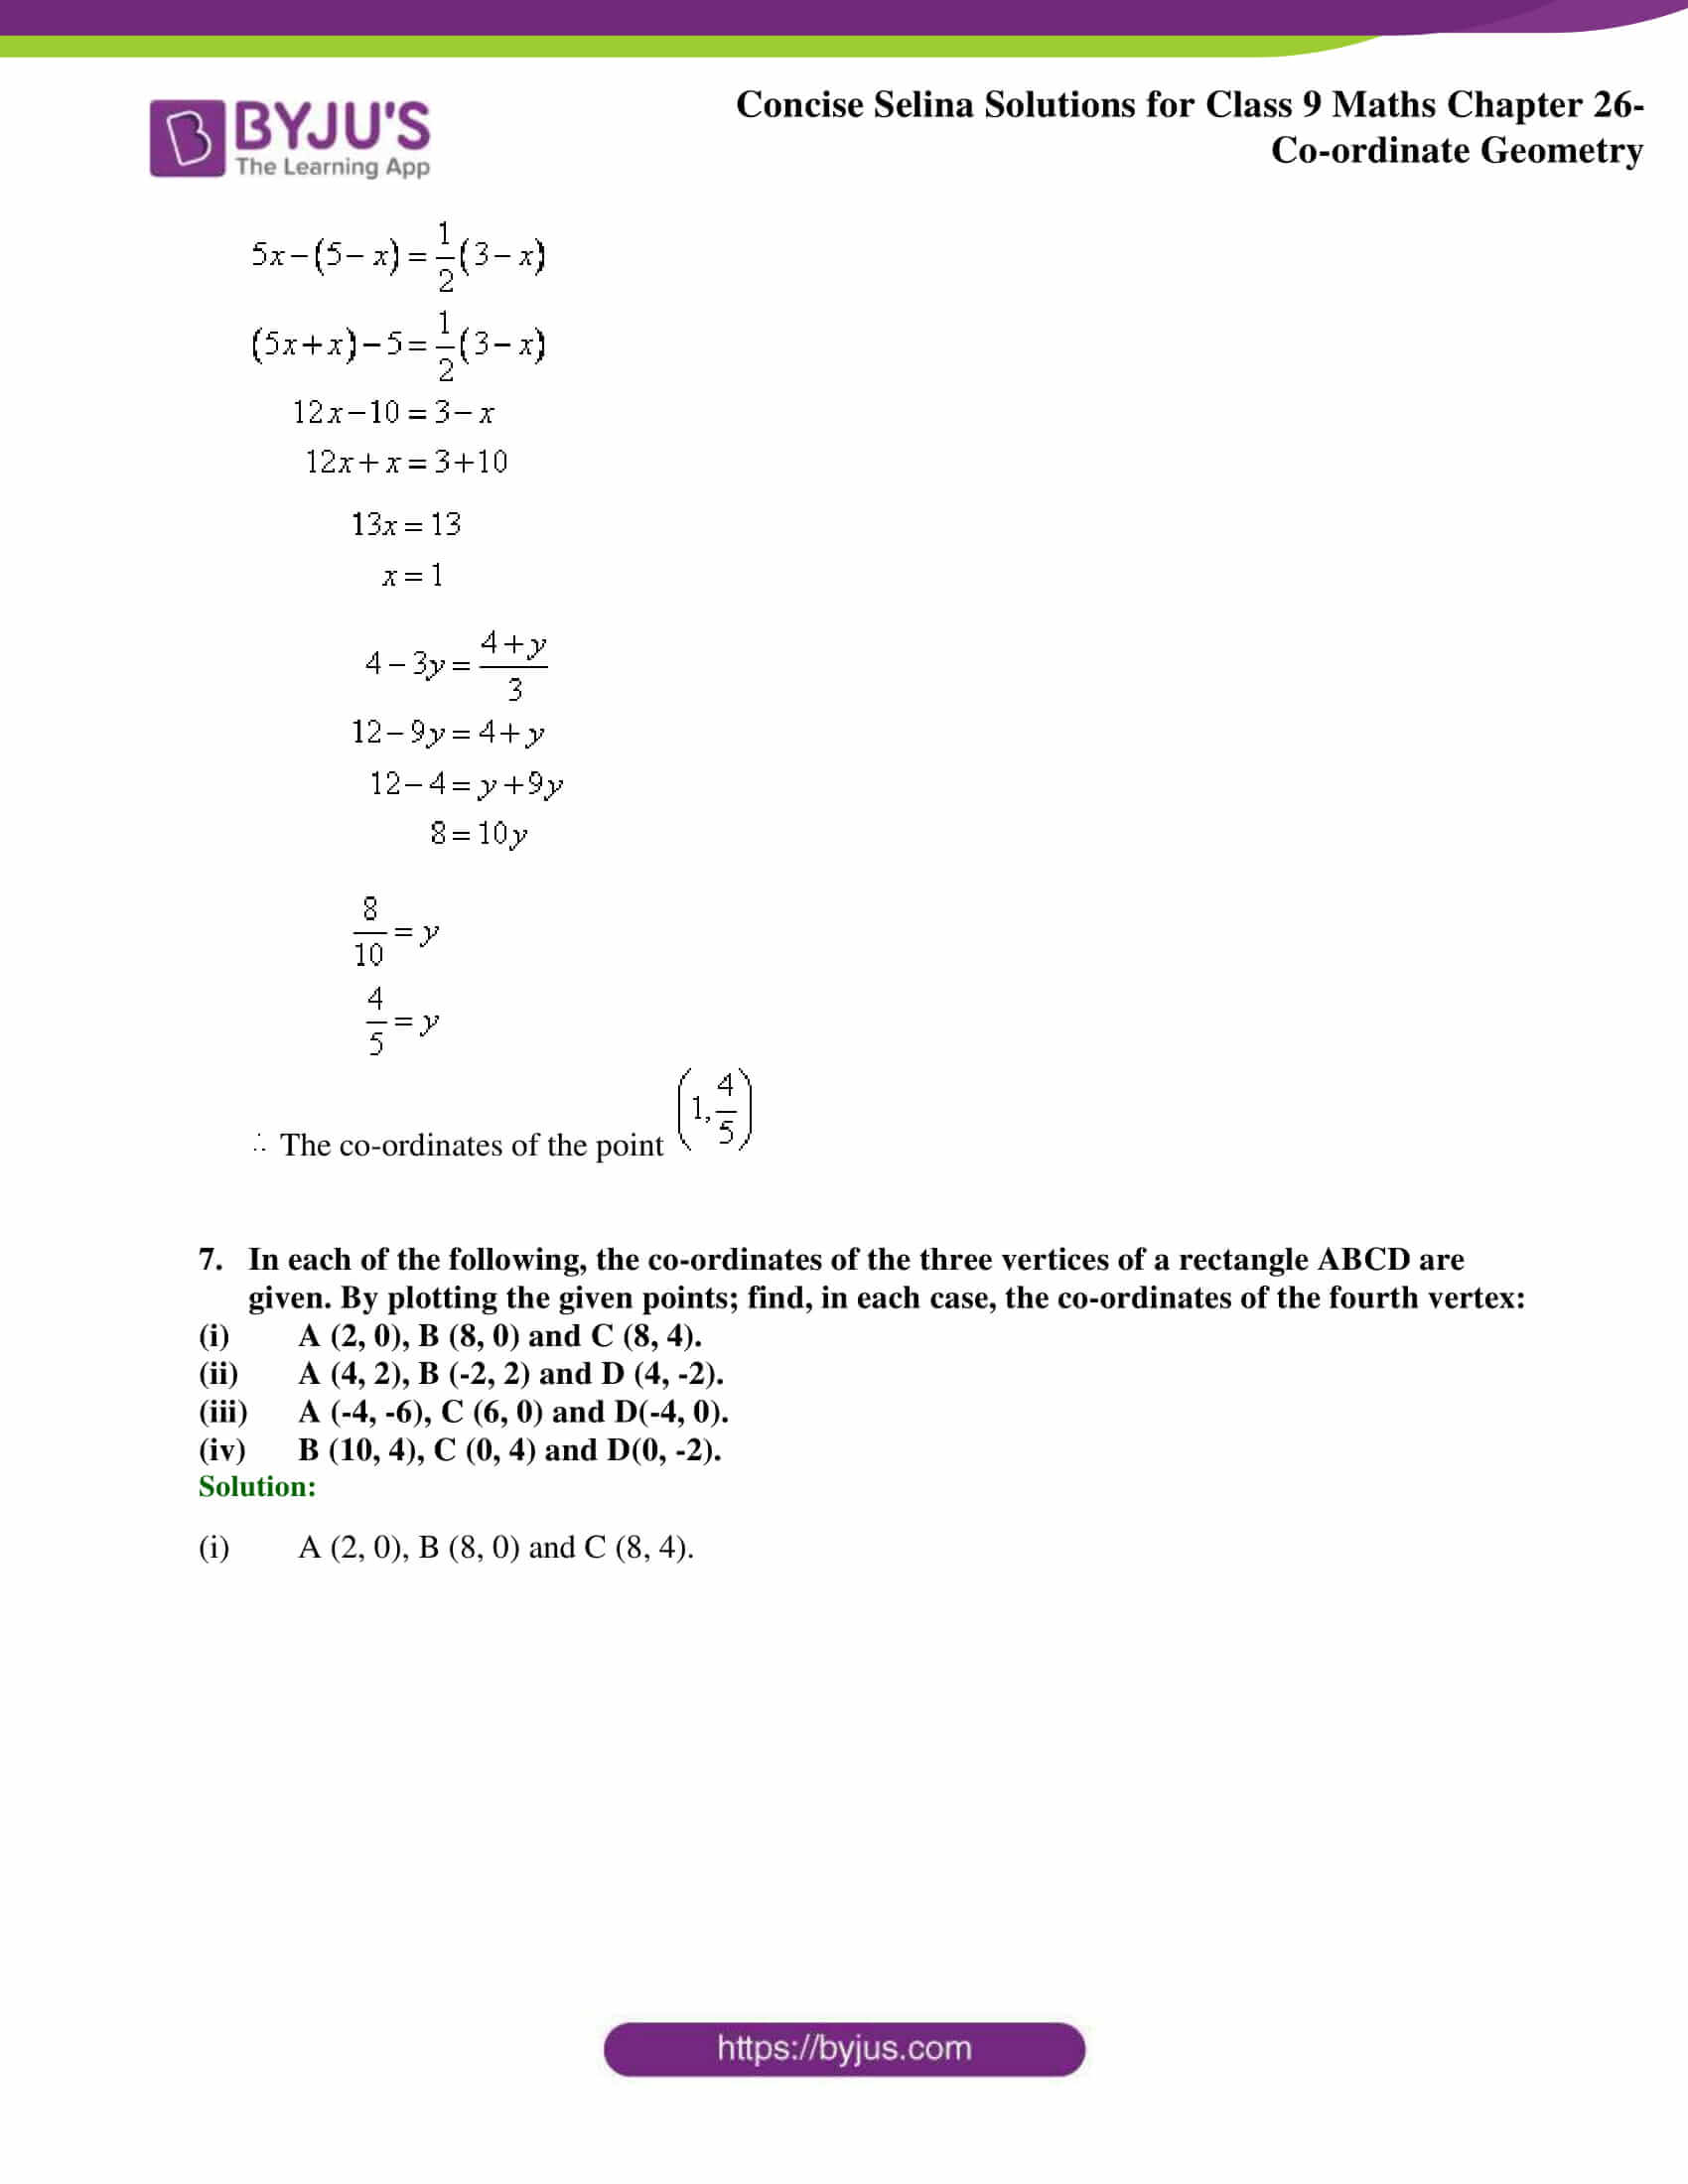 Selina Solutions for Class 9 Maths Chapter 26 part 07